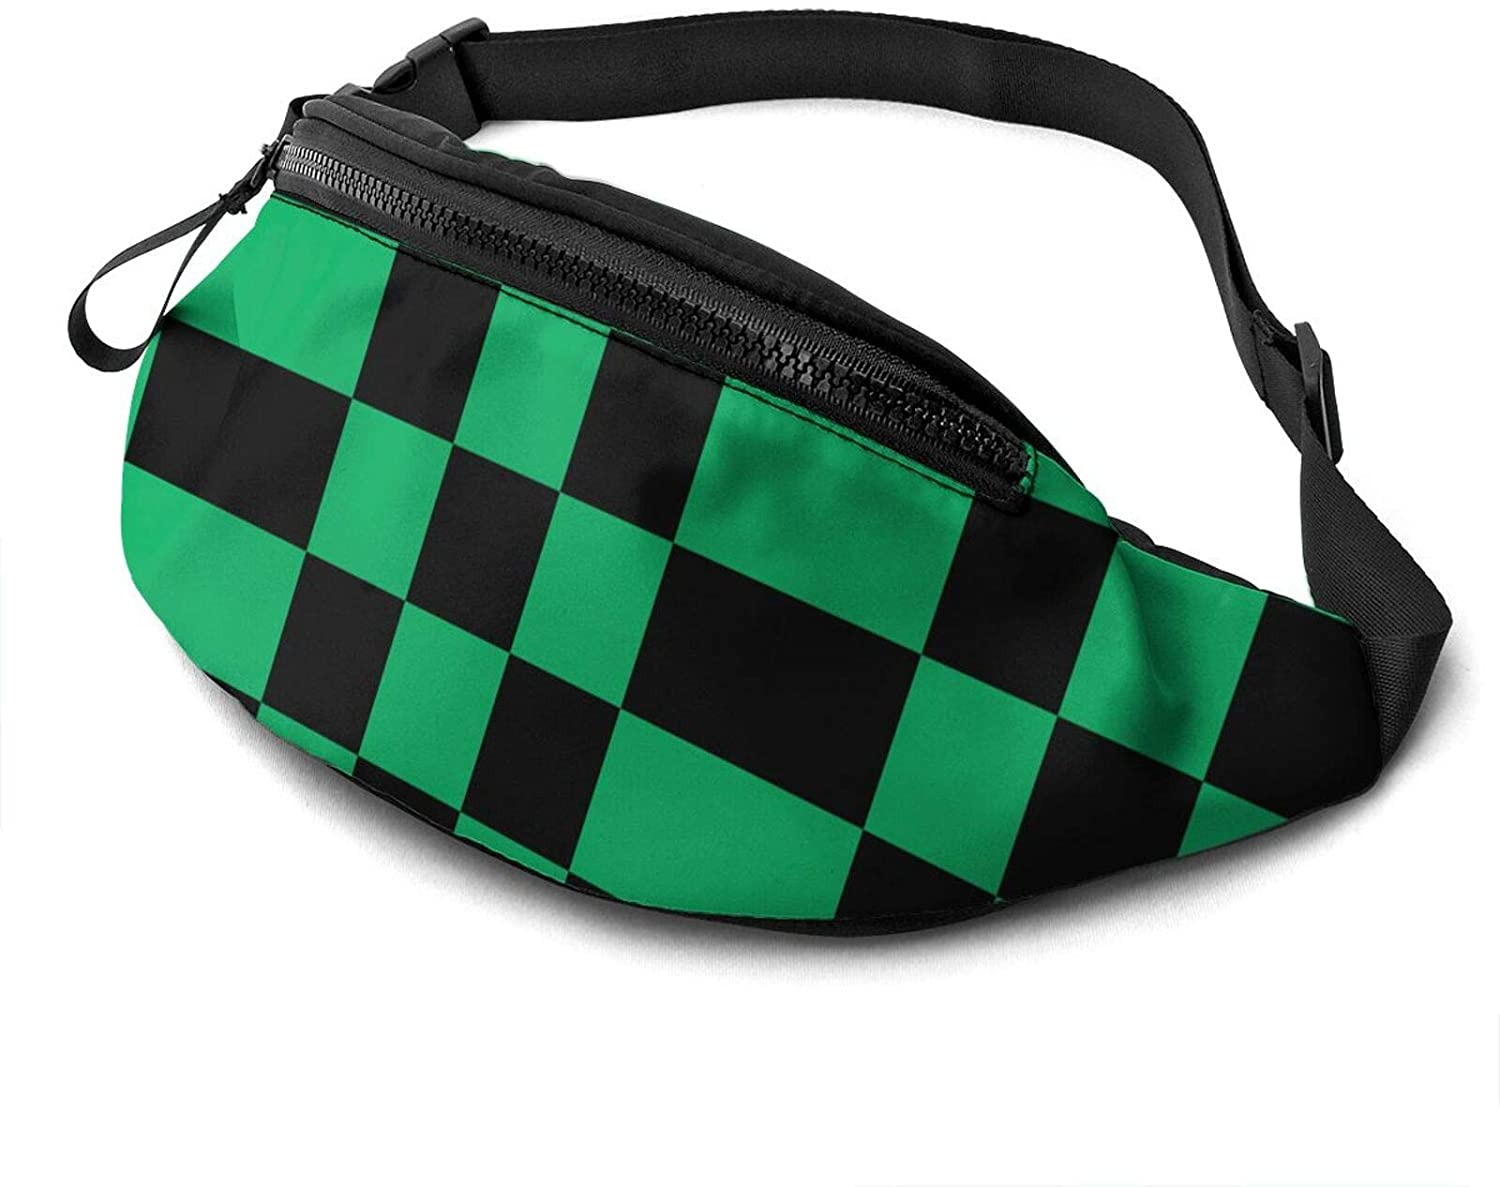 Dujiea Fanny Pack, Black And Green Checkered Waist Bag With Headphone Hole Belt Bag Adjustable Sling Pocket Fashion Hip Bum Bag For Women Men Kids Outdoors Casual Travelling Hiking Cycling